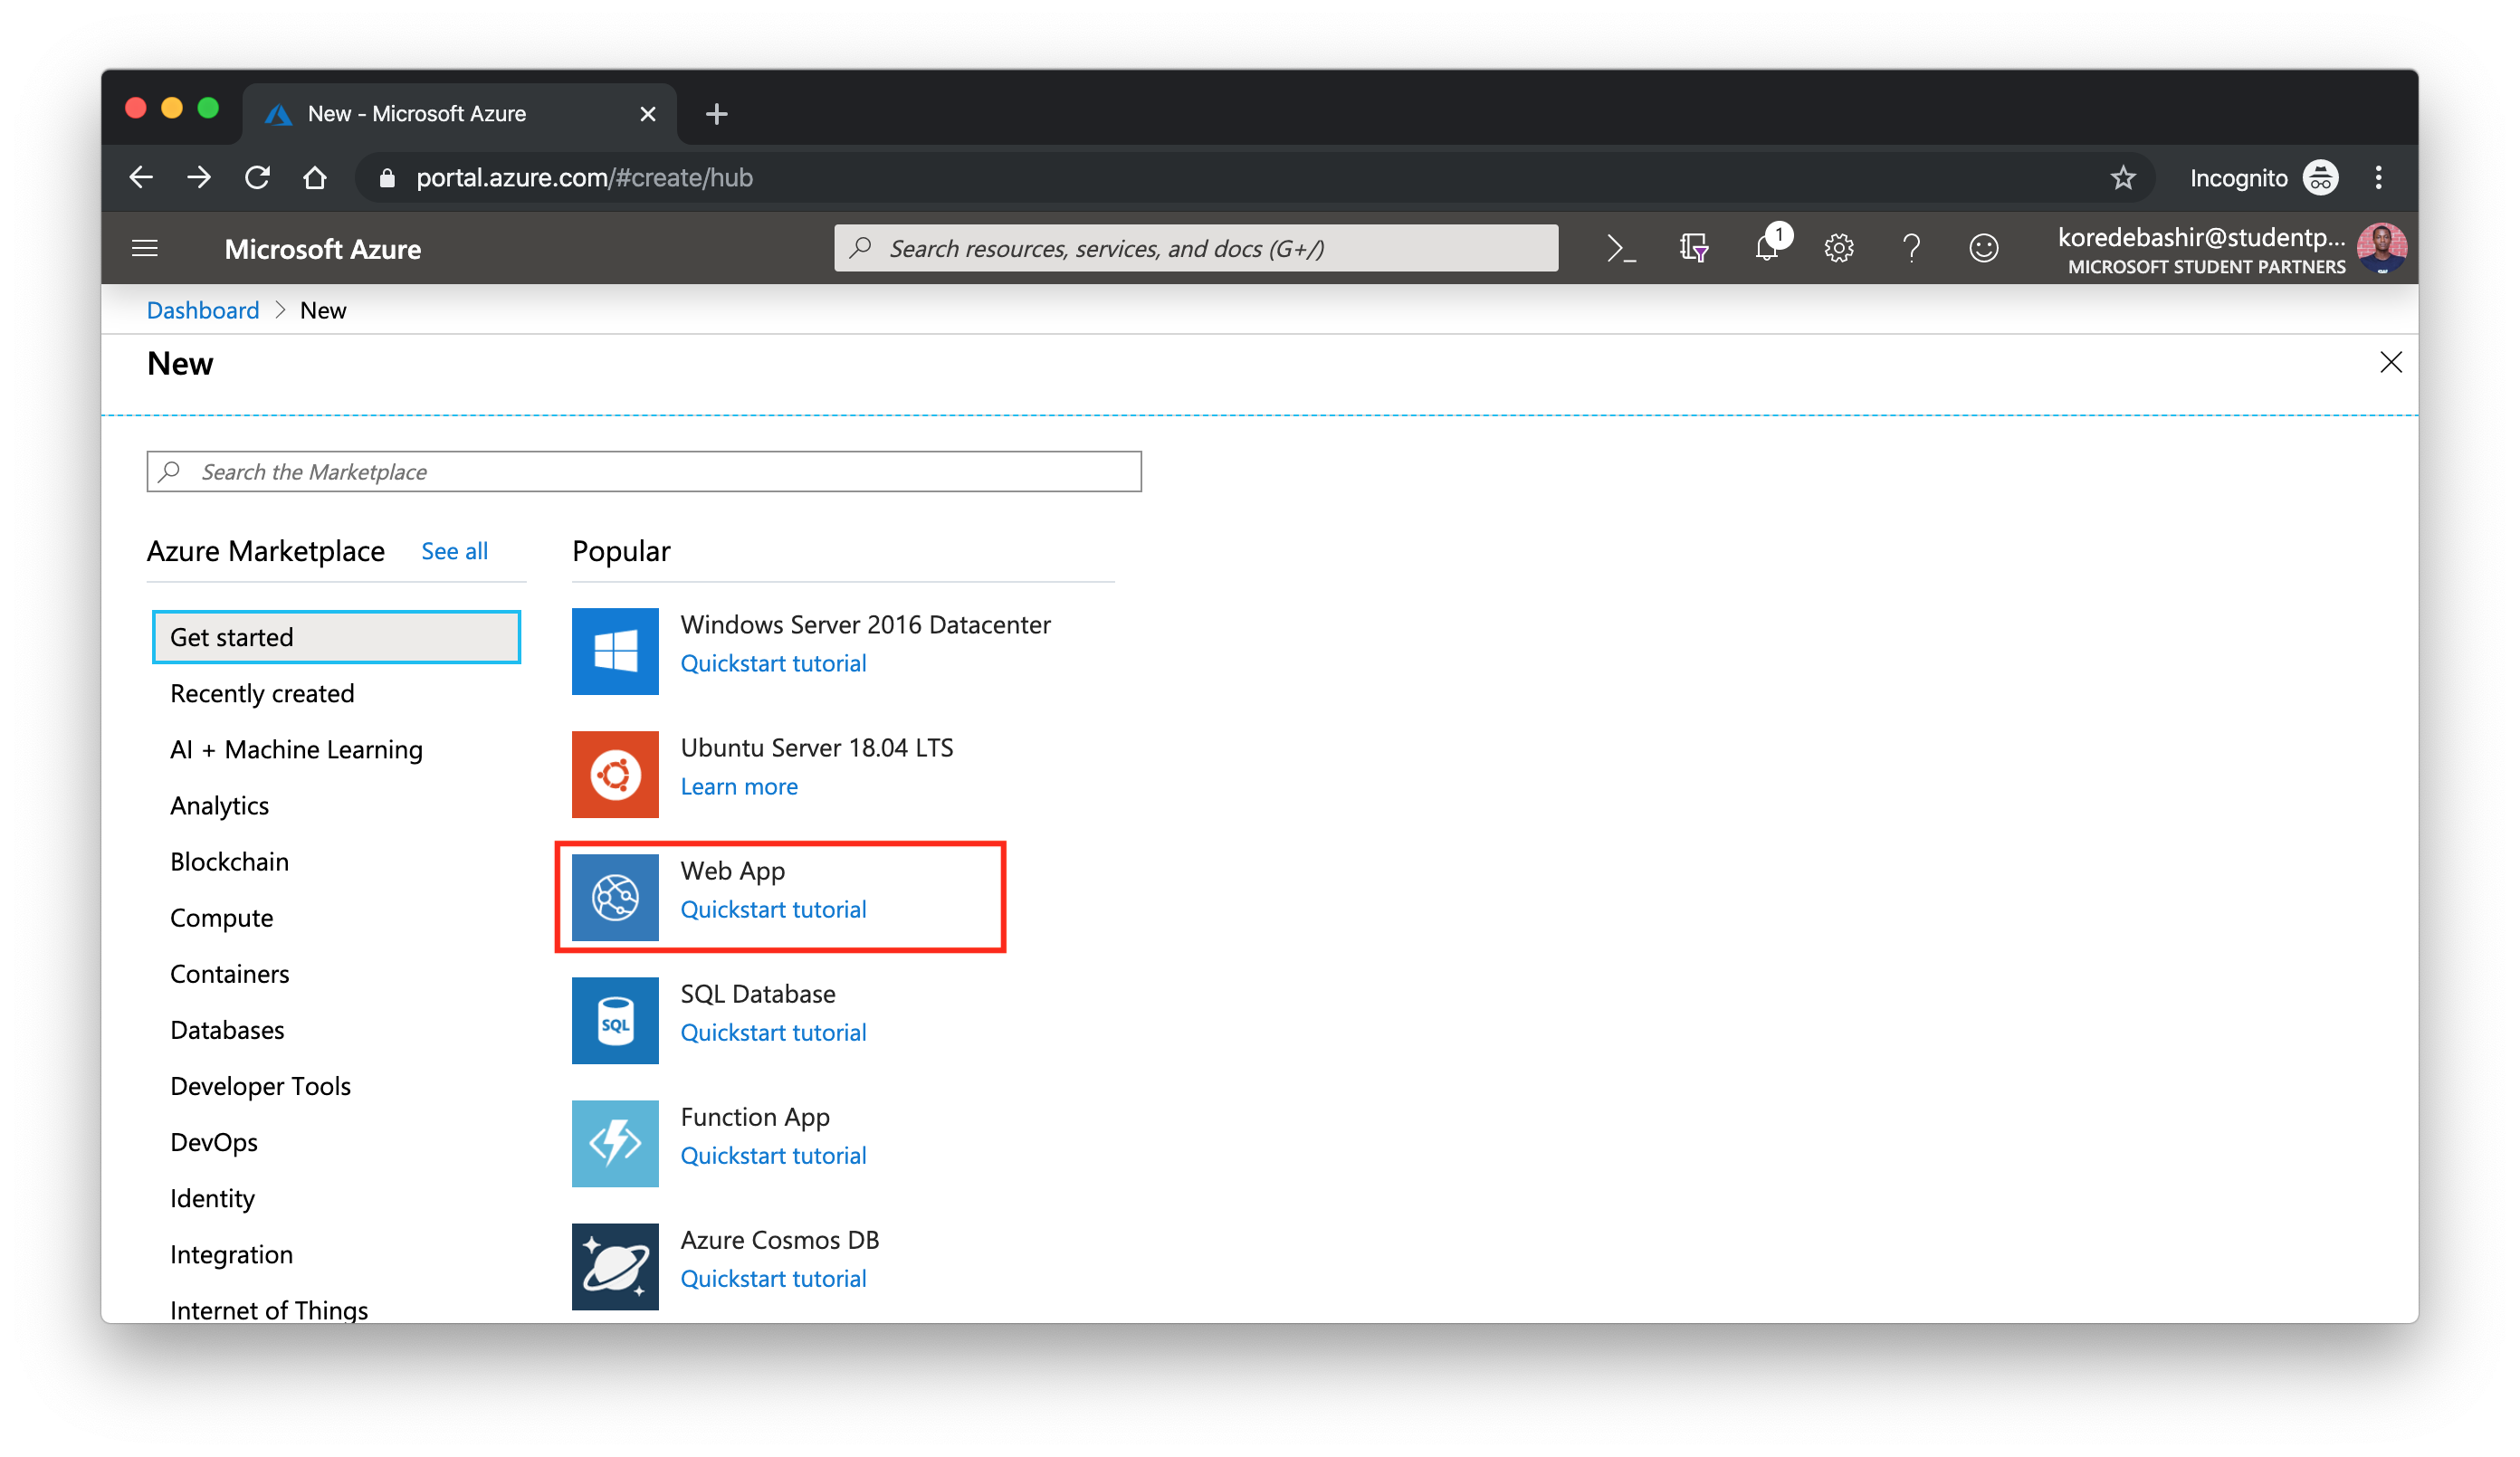 """Click on """"Web App"""" to get the Web App Service from the Azure Marketplace to your new resource"""